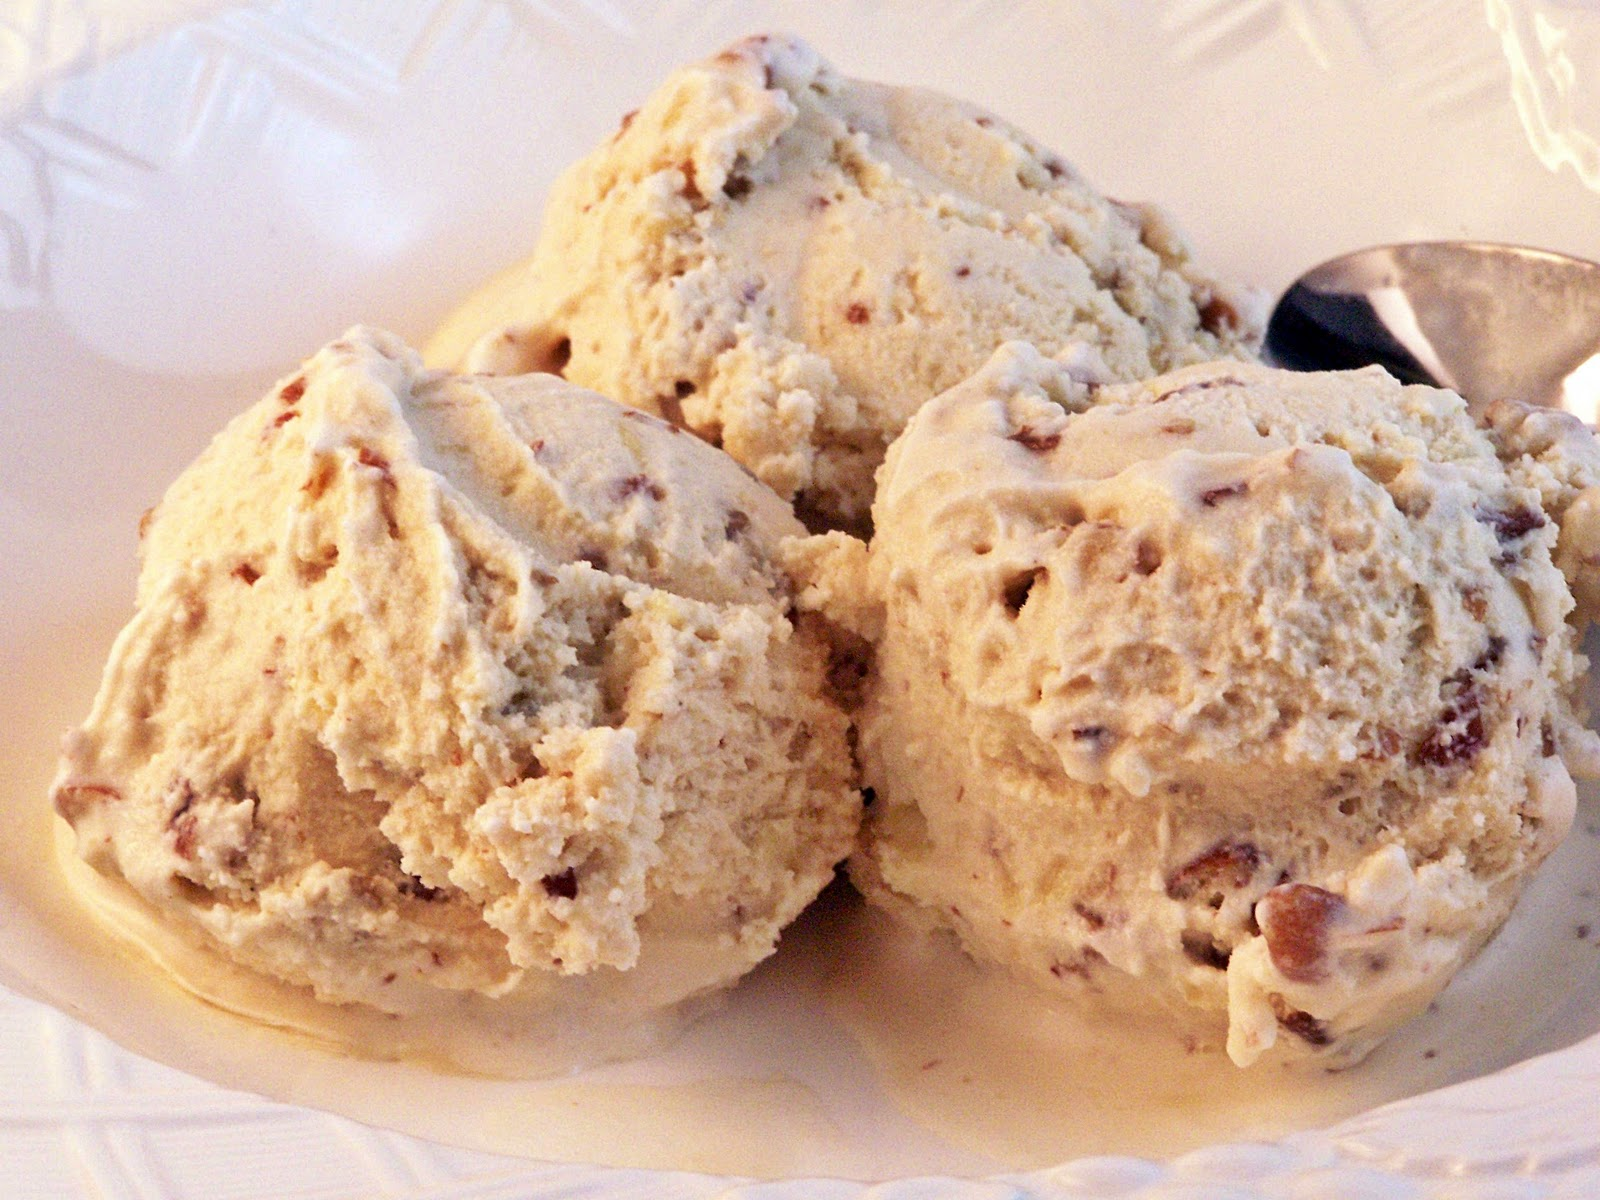 Butter Pecan Ice Cream for Ice Cream Sunday | Cravings of a Lunatic